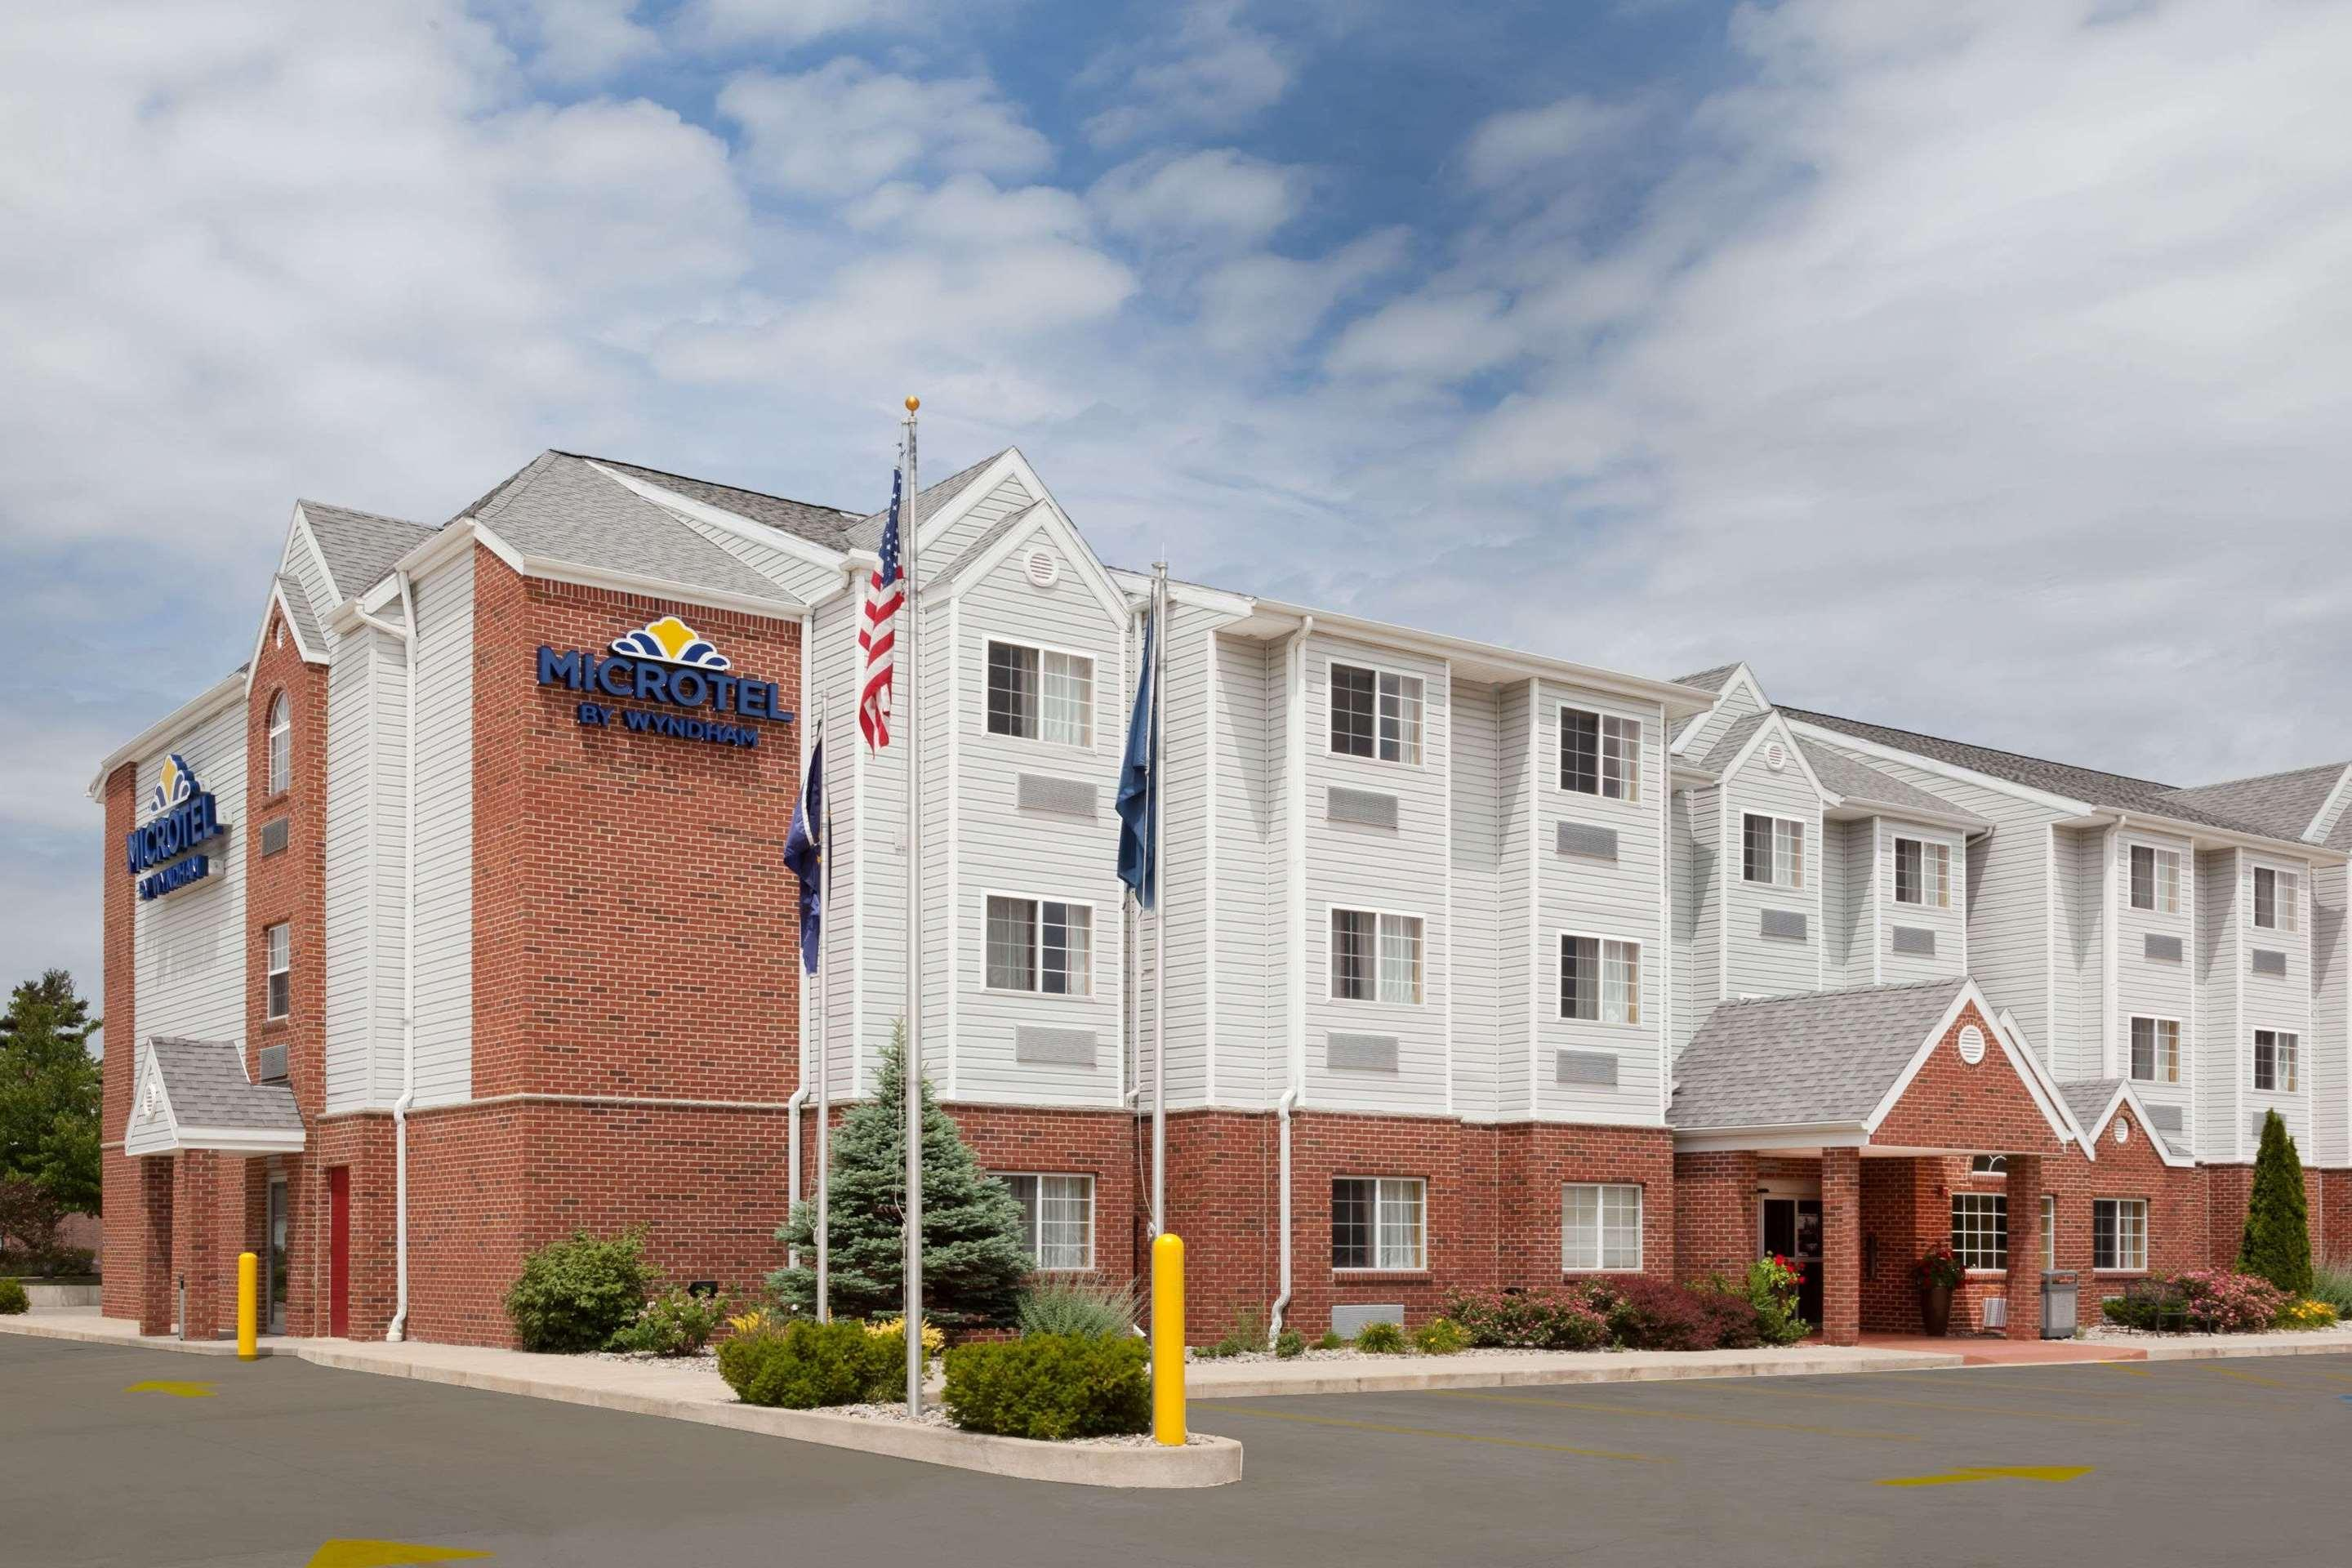 Microtel Inn & Suites by Wyndham South Bend/At Notre Dame Un